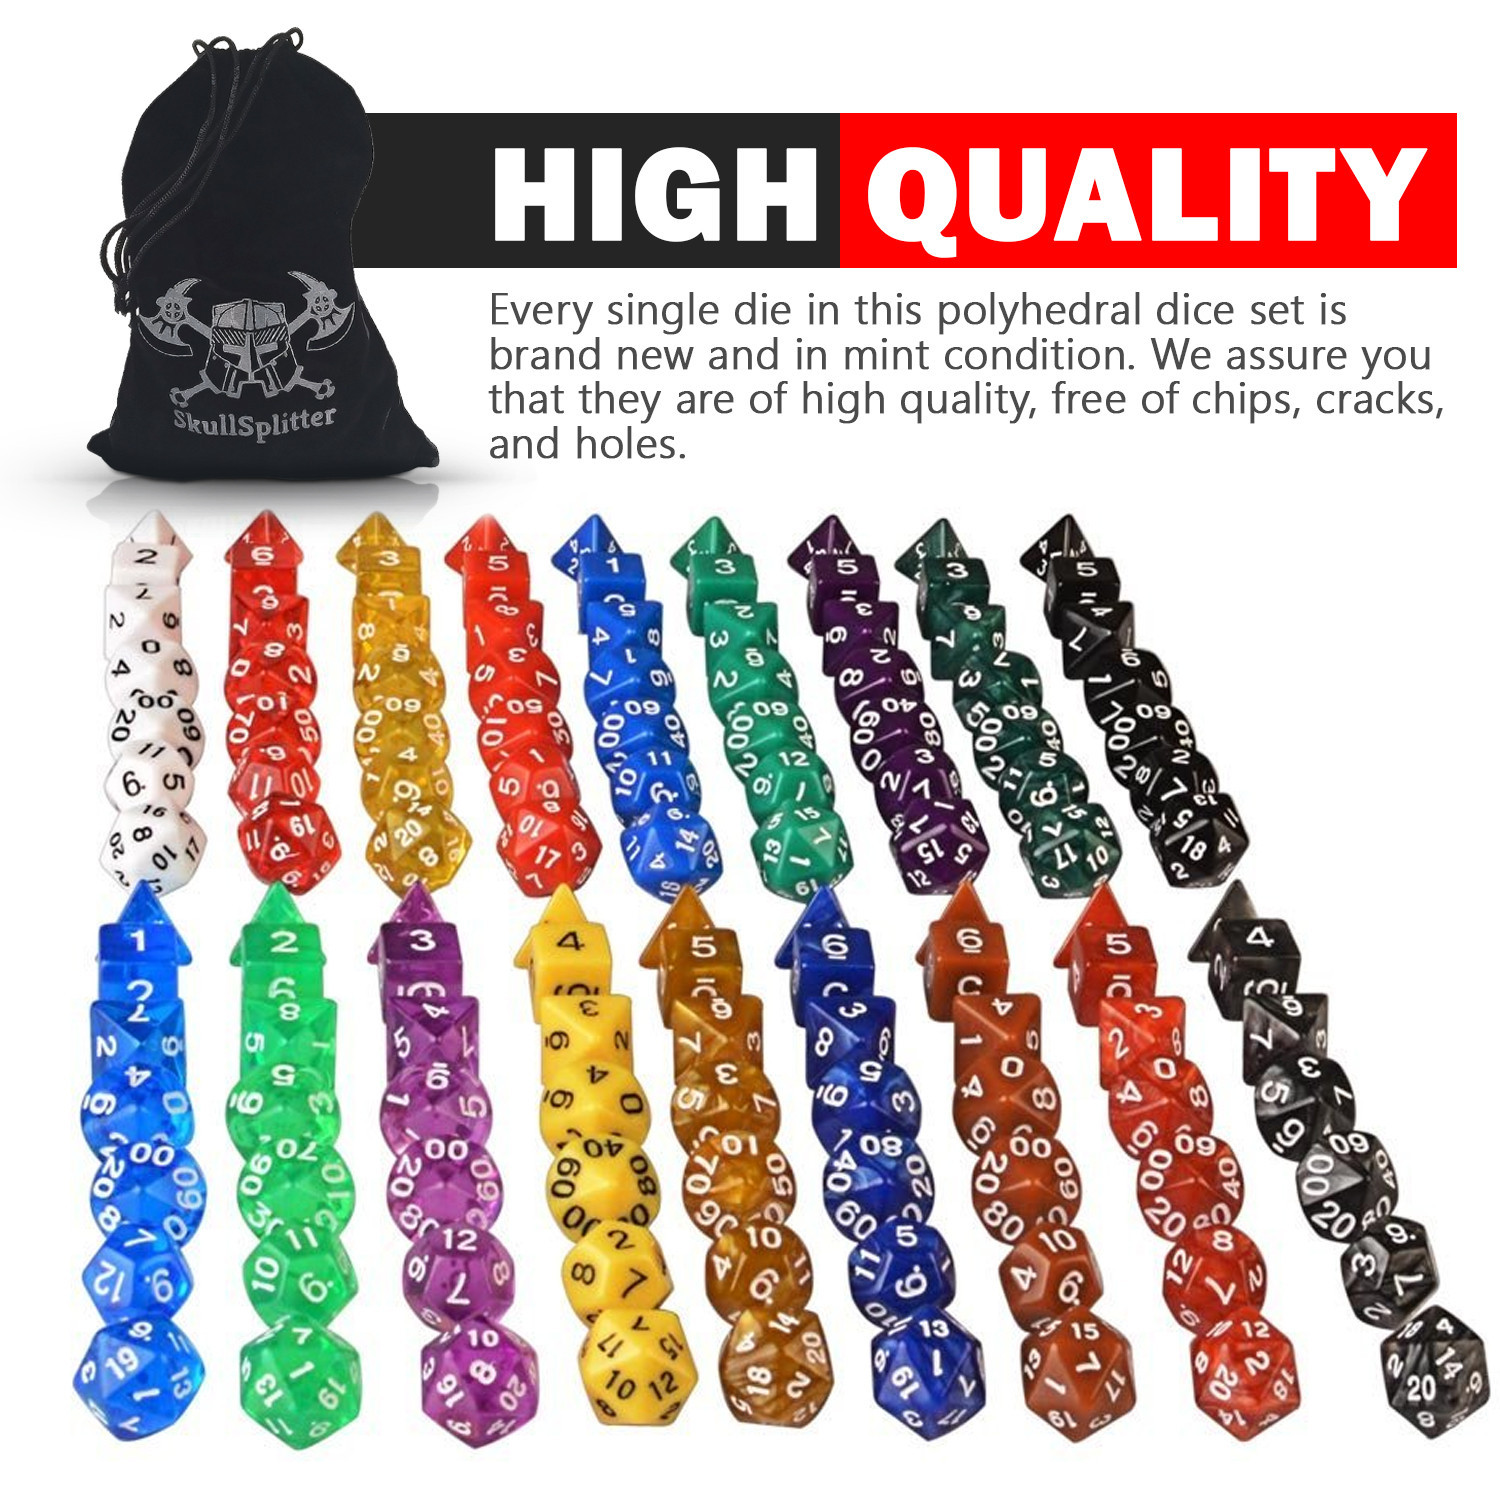 One Pound Bag- 126 Polyhedral RPG Dice- 18 Complete Sets- Velvet Pouch Included -